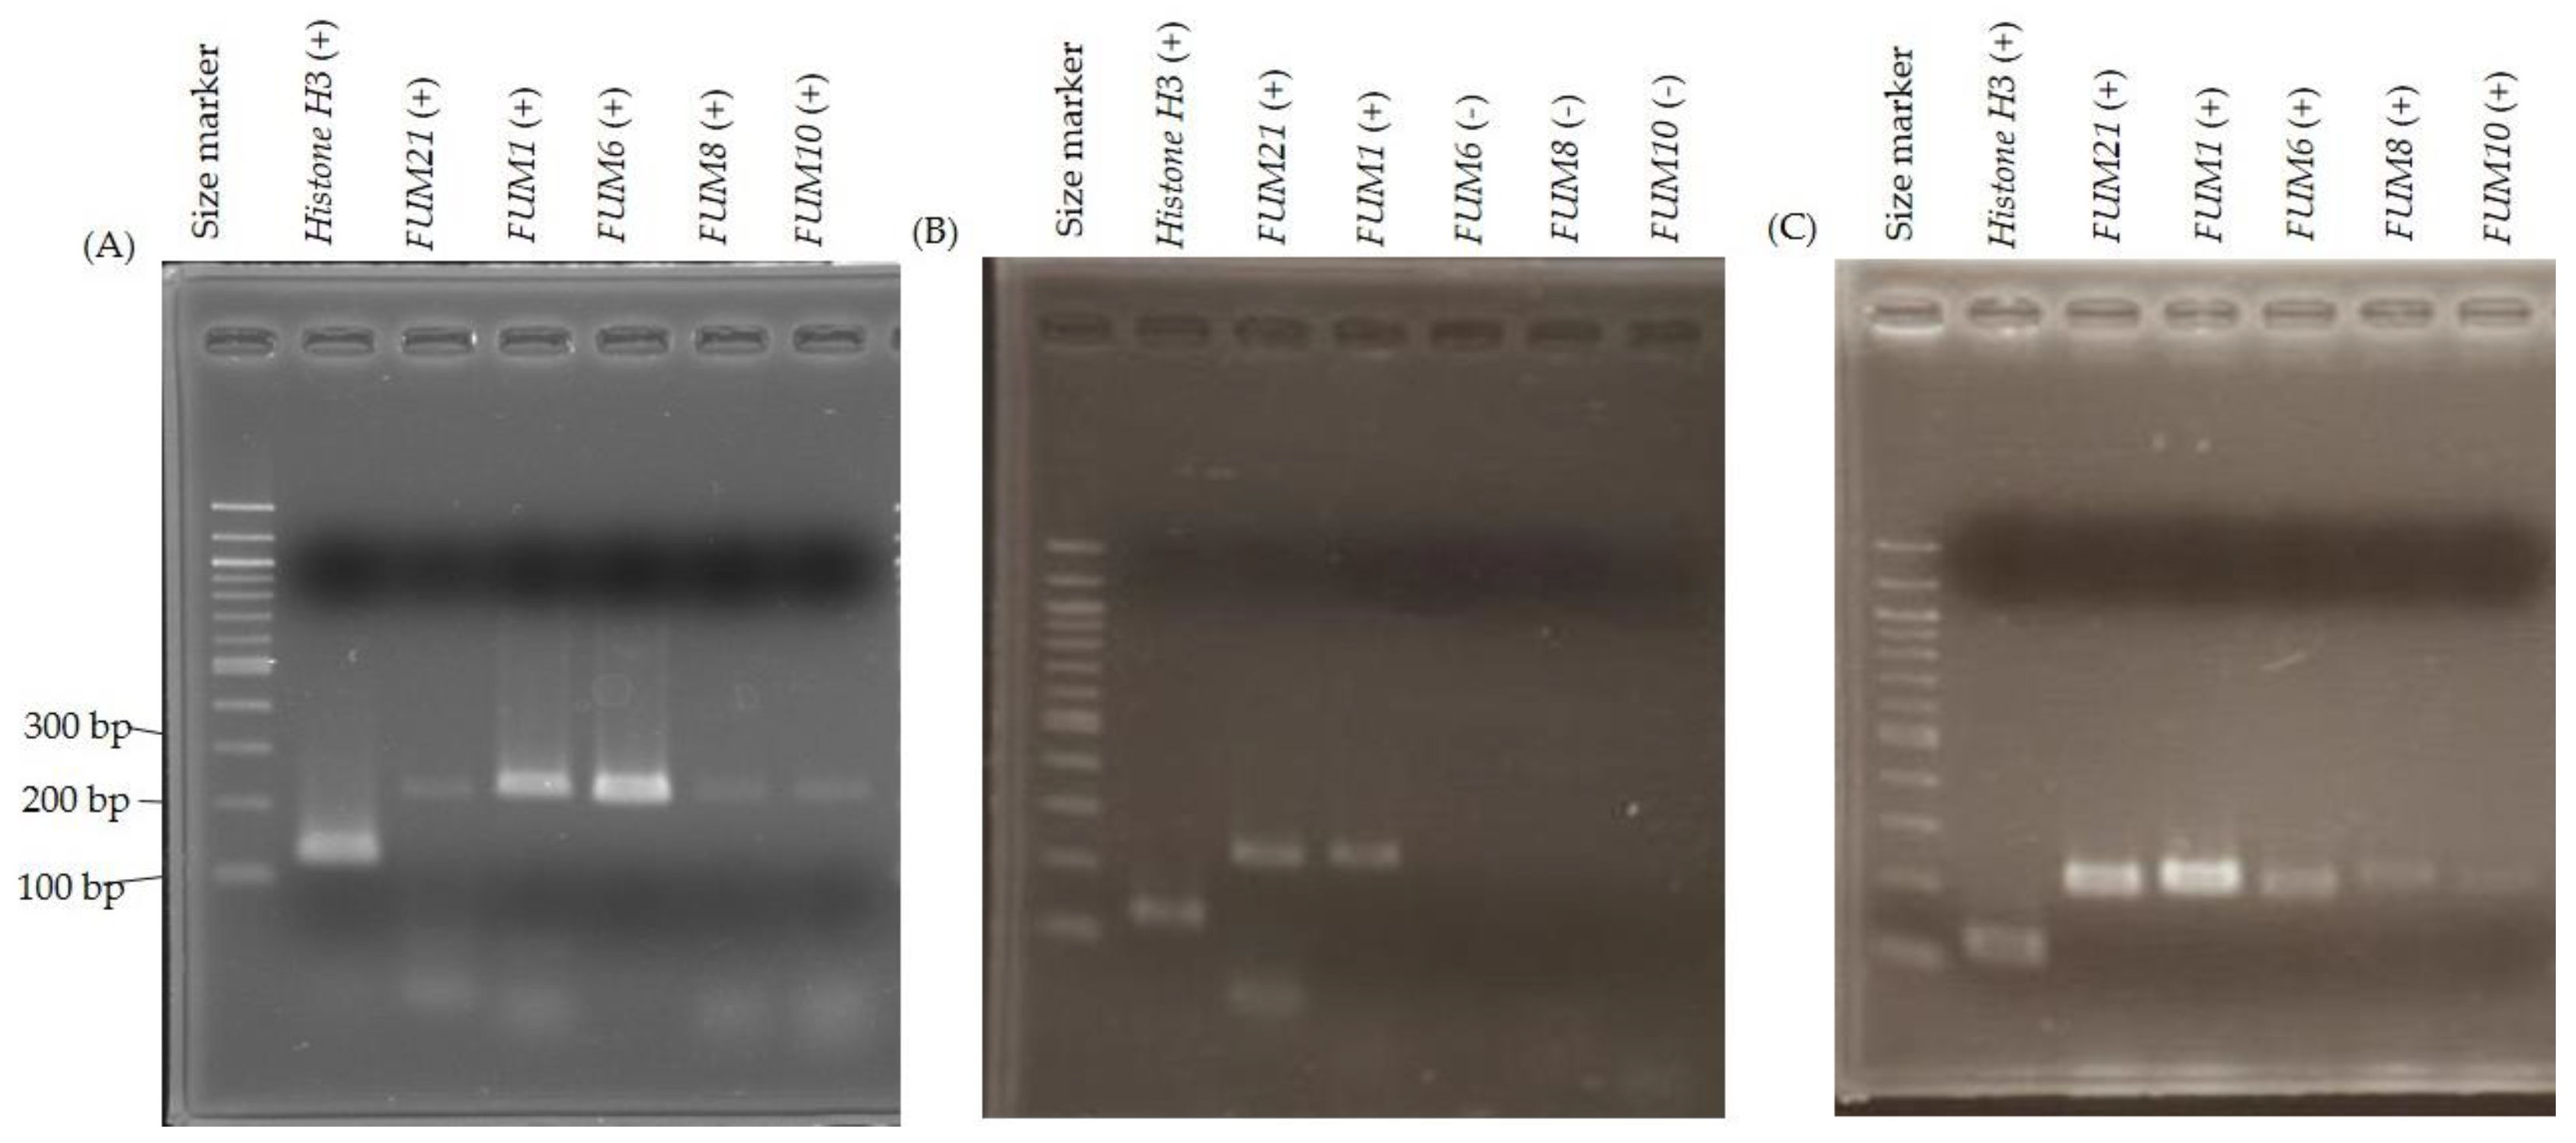 Toxins | Free Full-Text | A Natural Variation of Fumonisin Gene